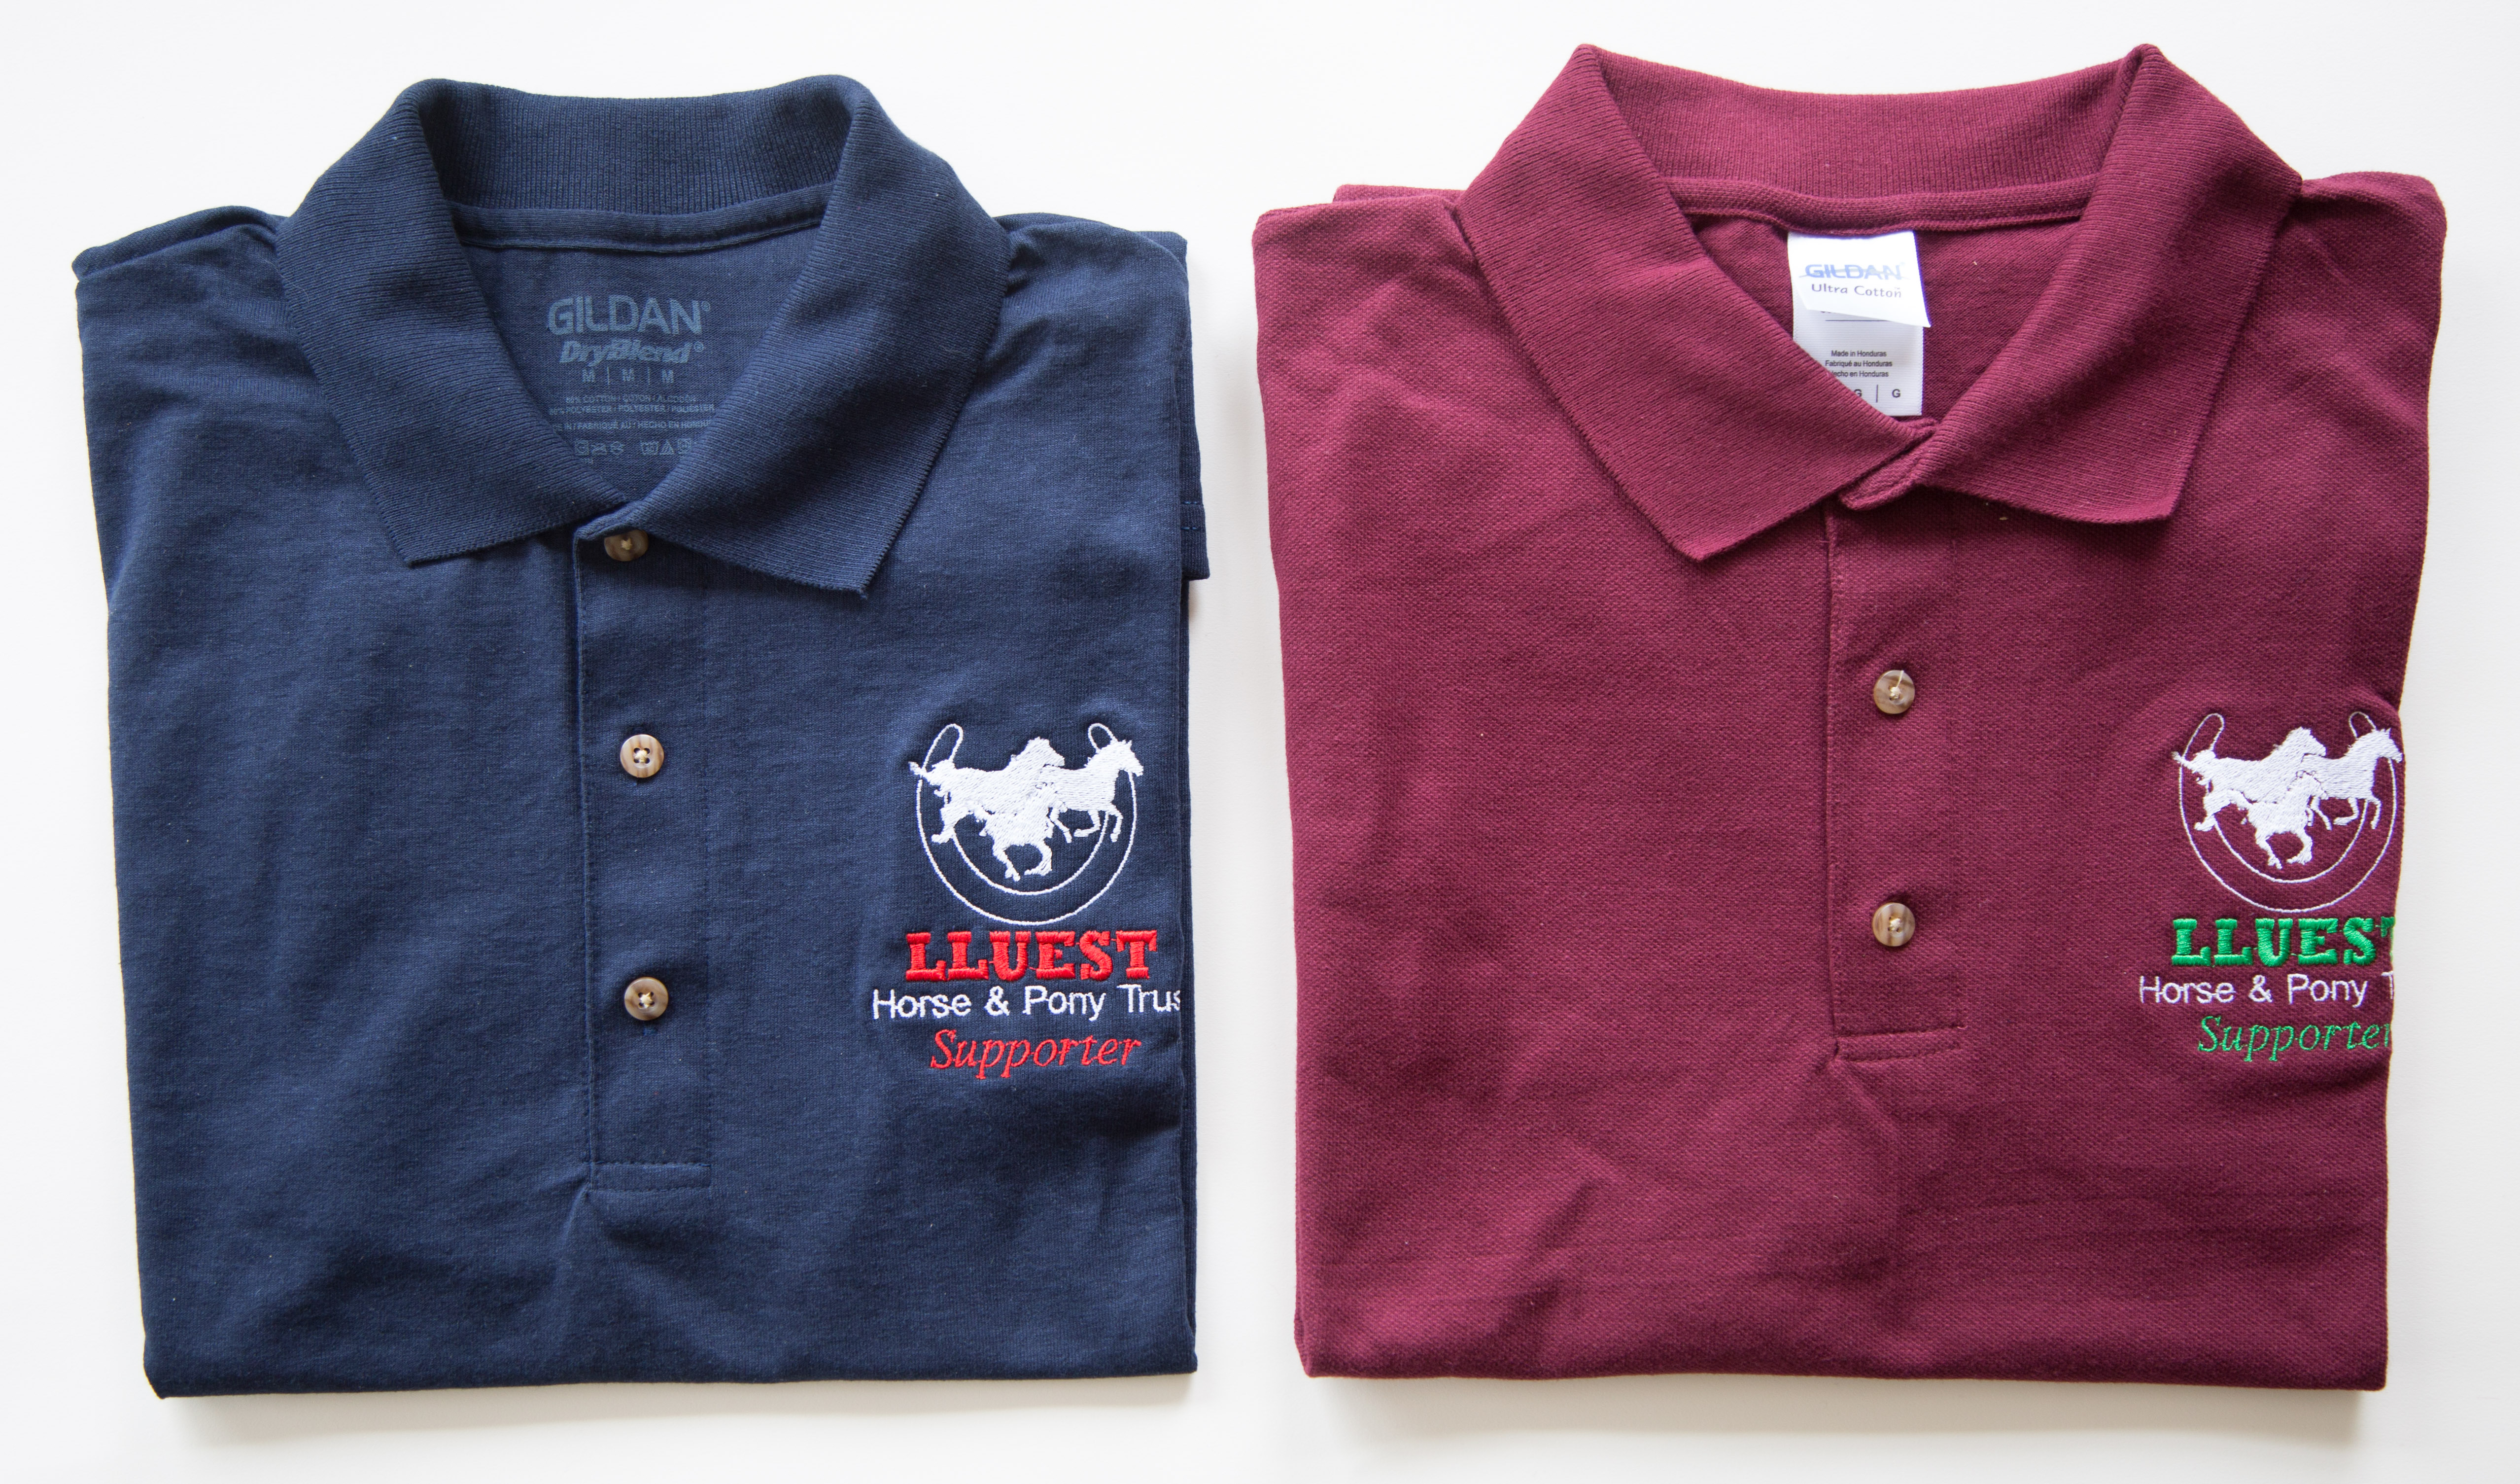 Adult S Supporter S Polo Shirt Lluest Horse And Pony Trust